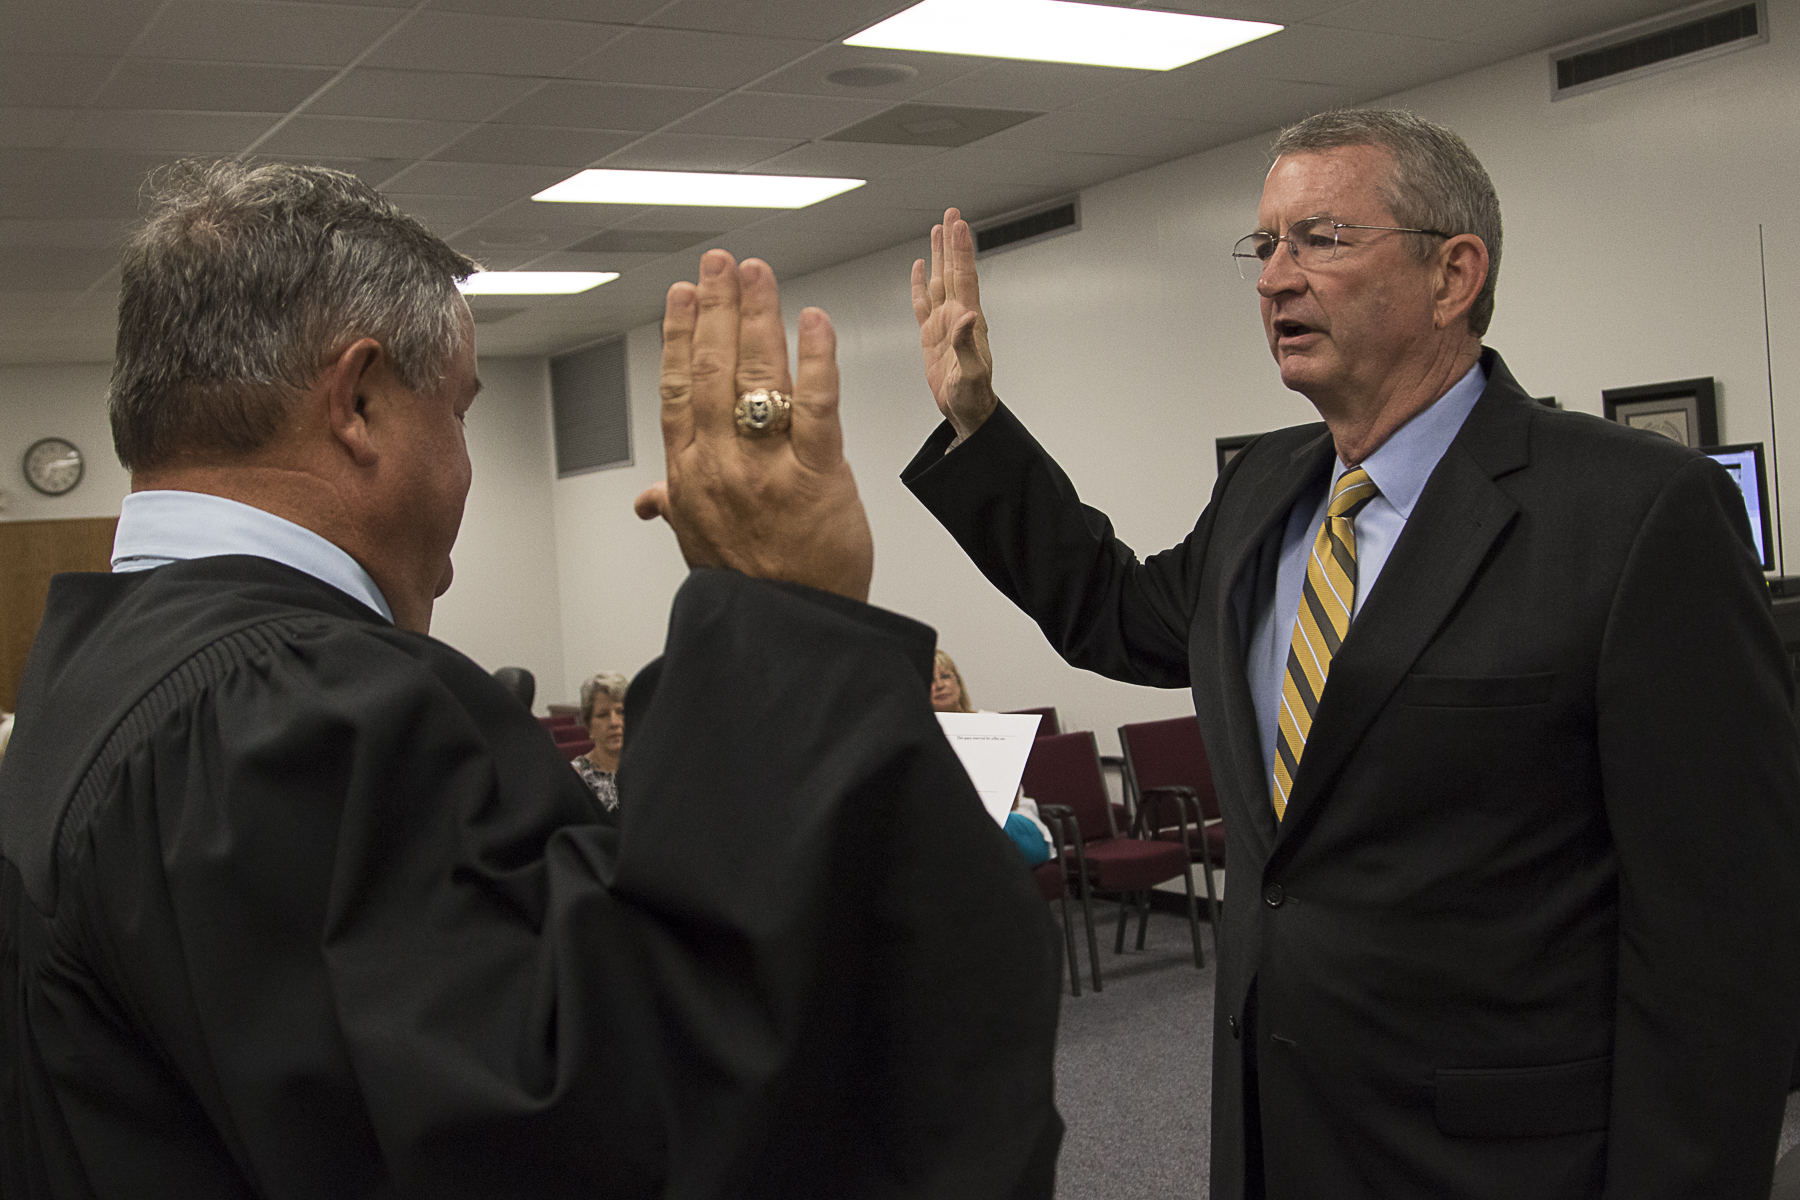 BOARD OF TRUSTEES MEMBERS SWORN IN POPE